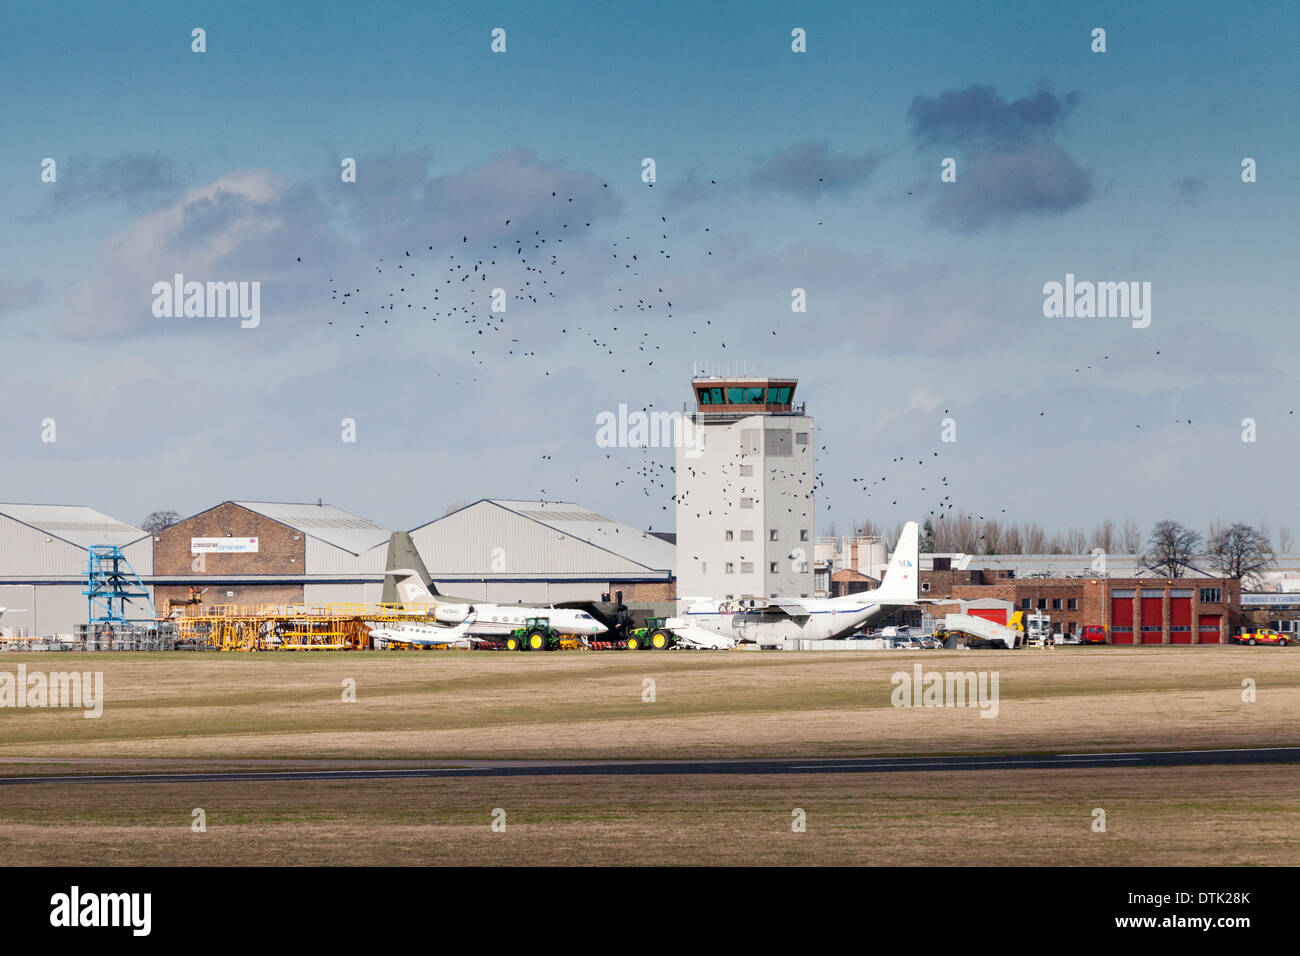 Cambridge airport, Cambridgeshire, England UK - Stock Image